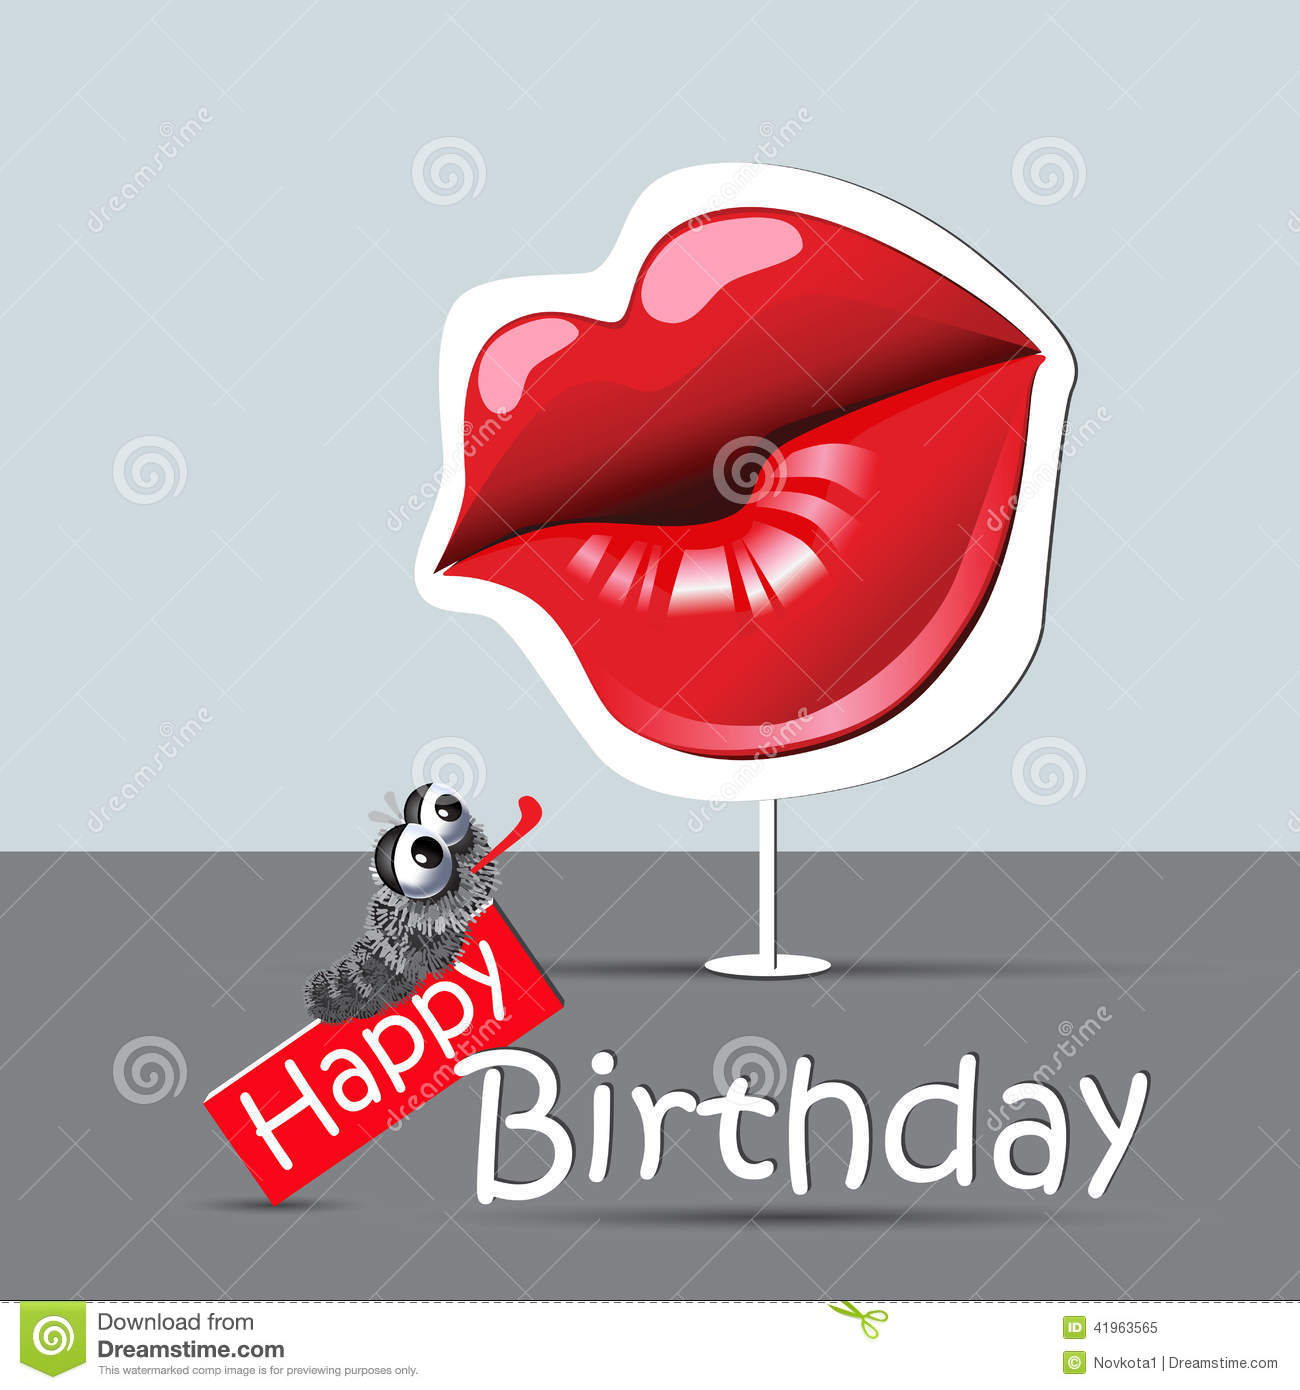 Kisses Wallpapers With Quotes Happy Birthday Funny Card Eyes And Smile Kiss Stock